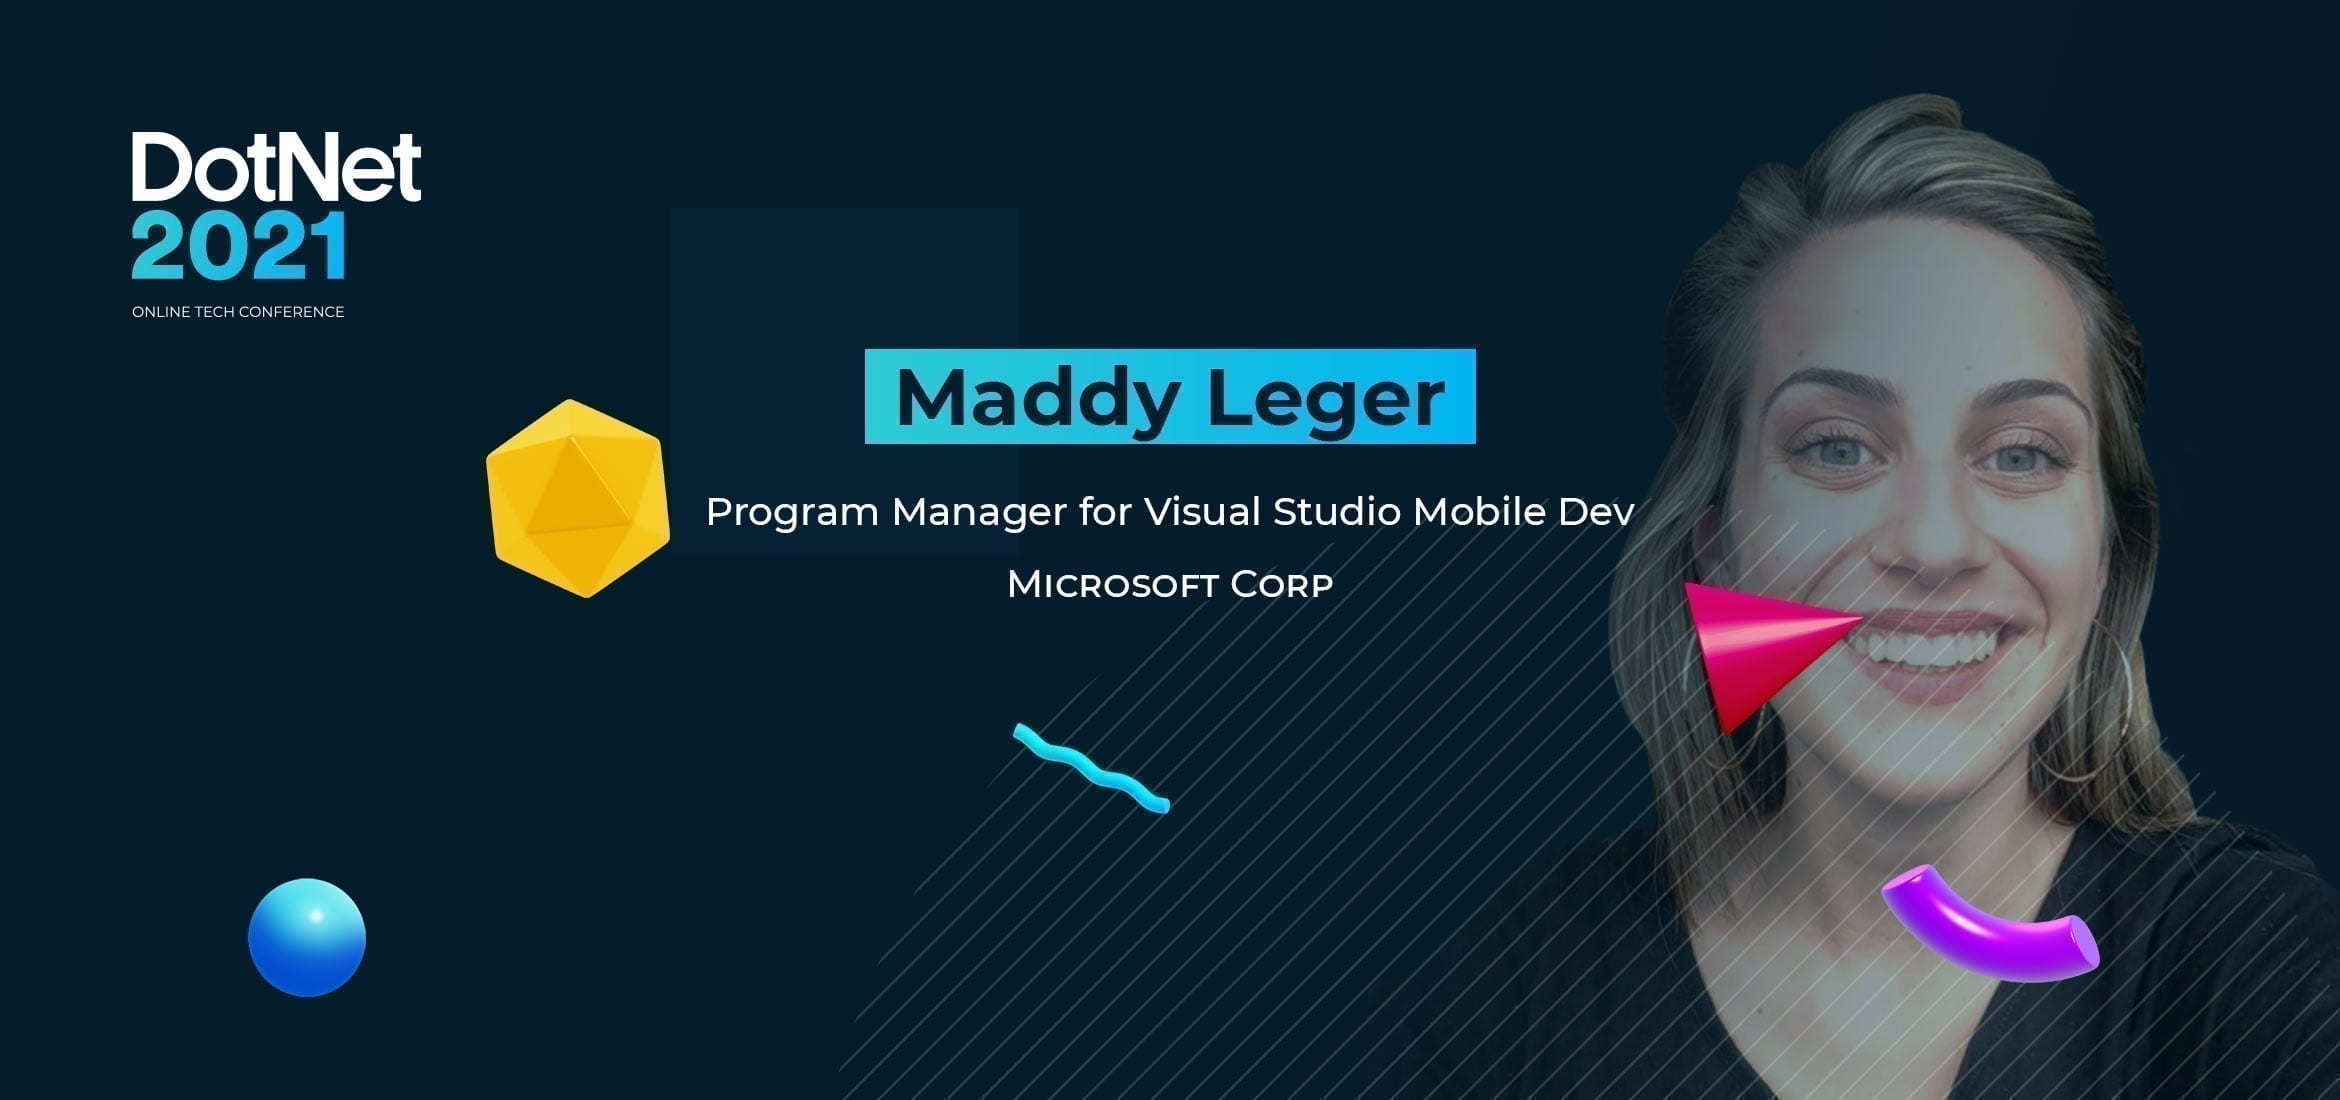 Maddy Leger